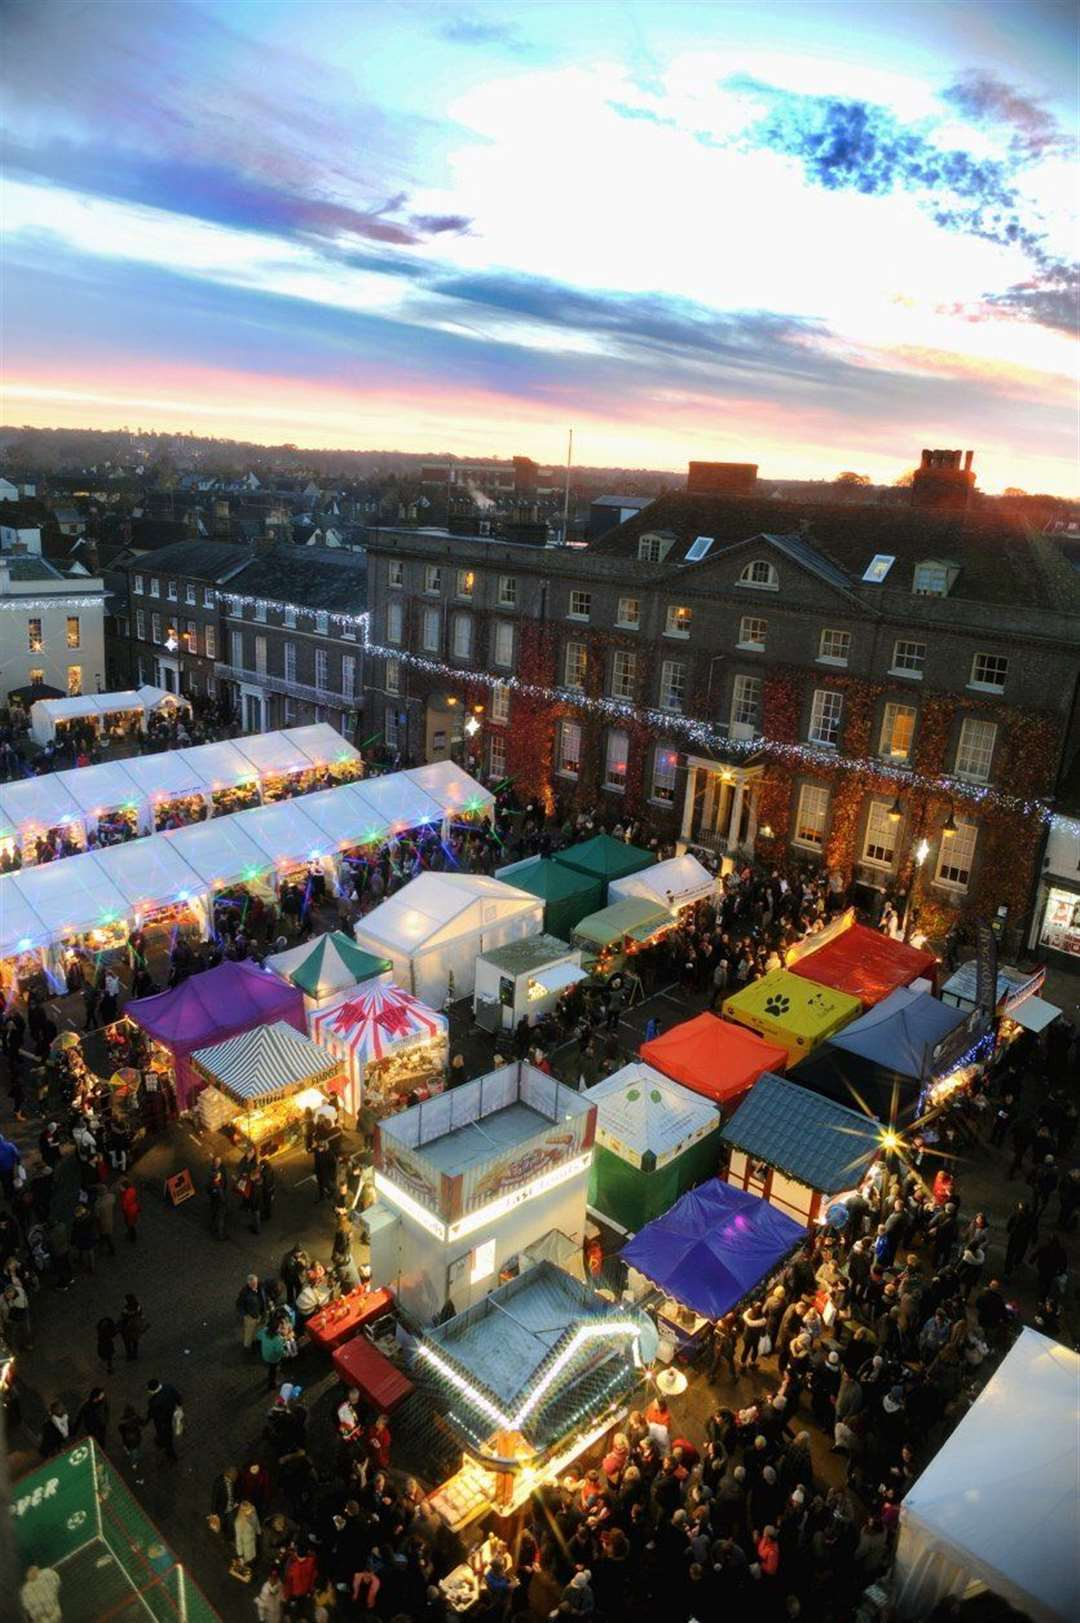 The Christmas Market in Bury St Edmunds gave Koti its best weekend yet